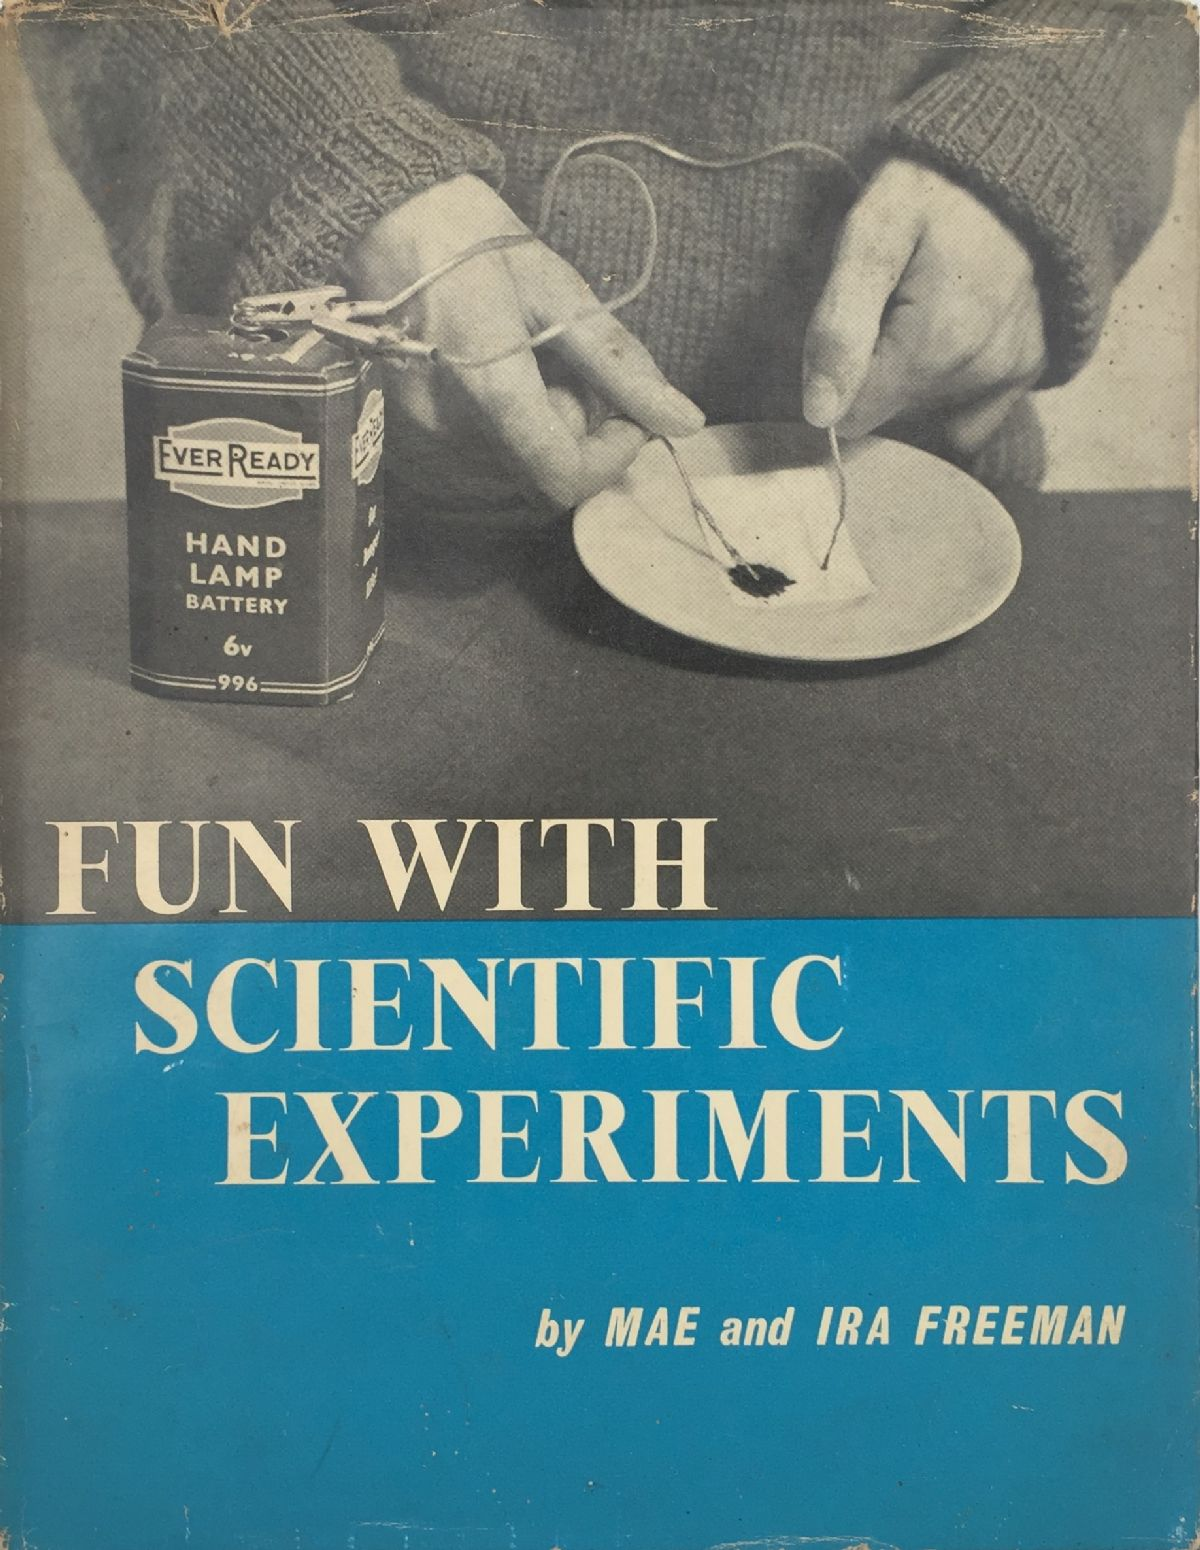 Fun With Scientific Experiments